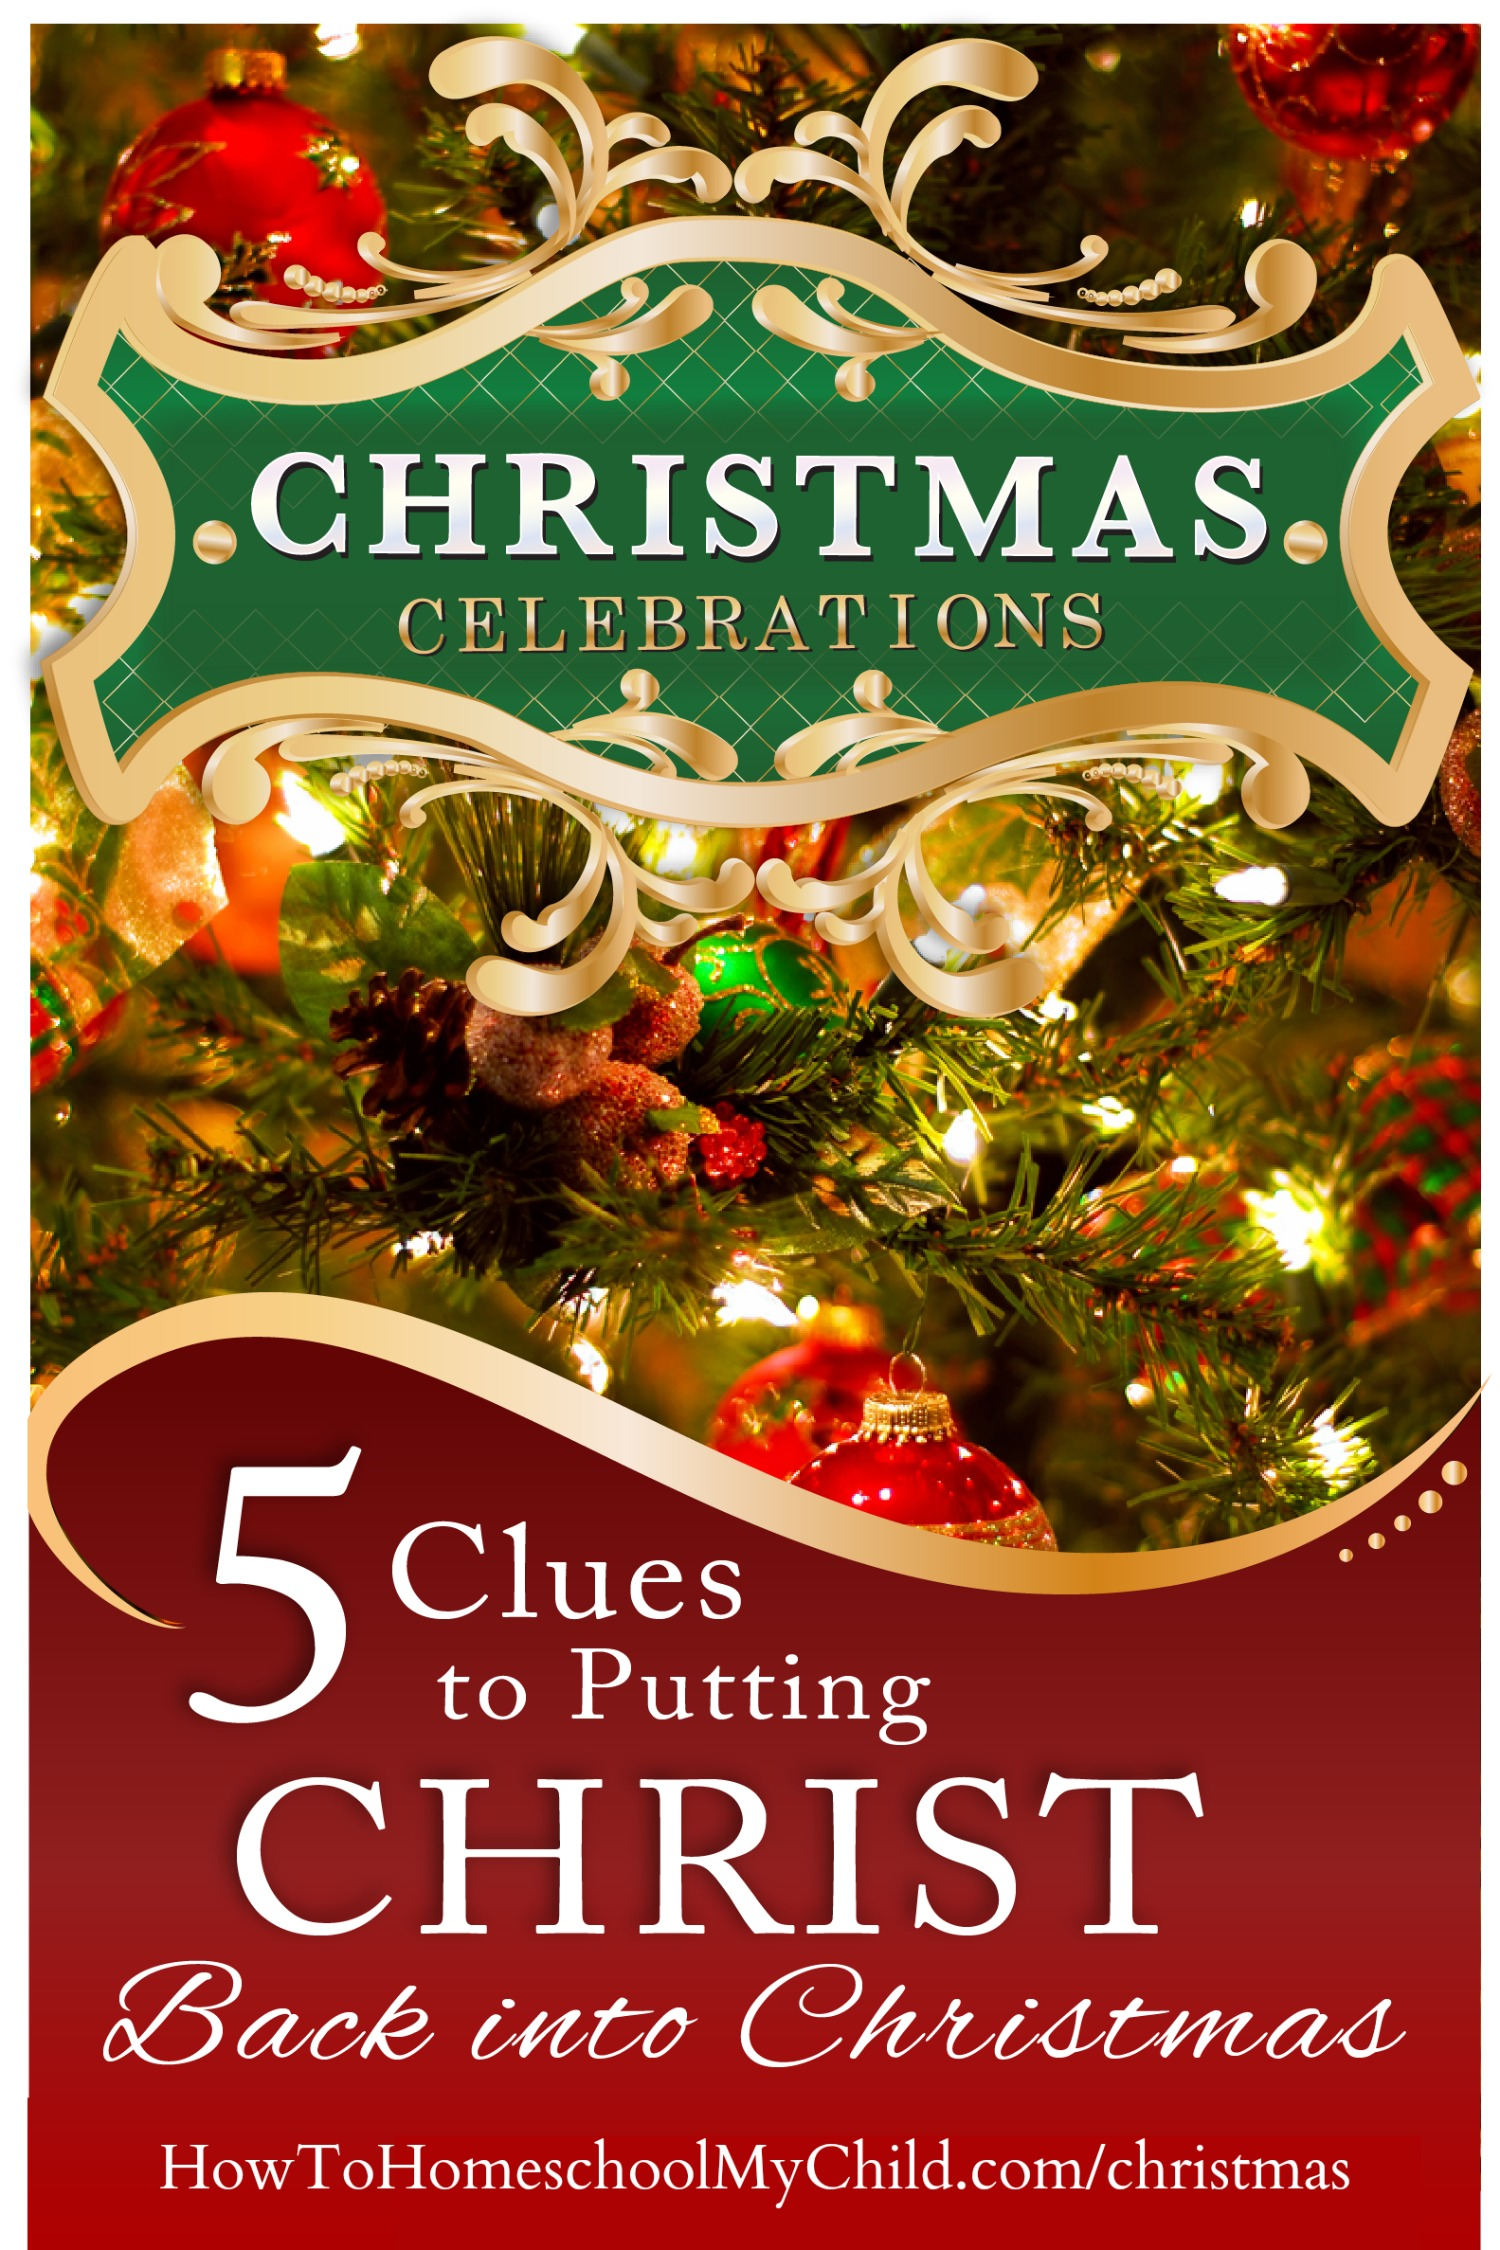 Free Online Workshop - discover how to keep Christ the center of Christmas